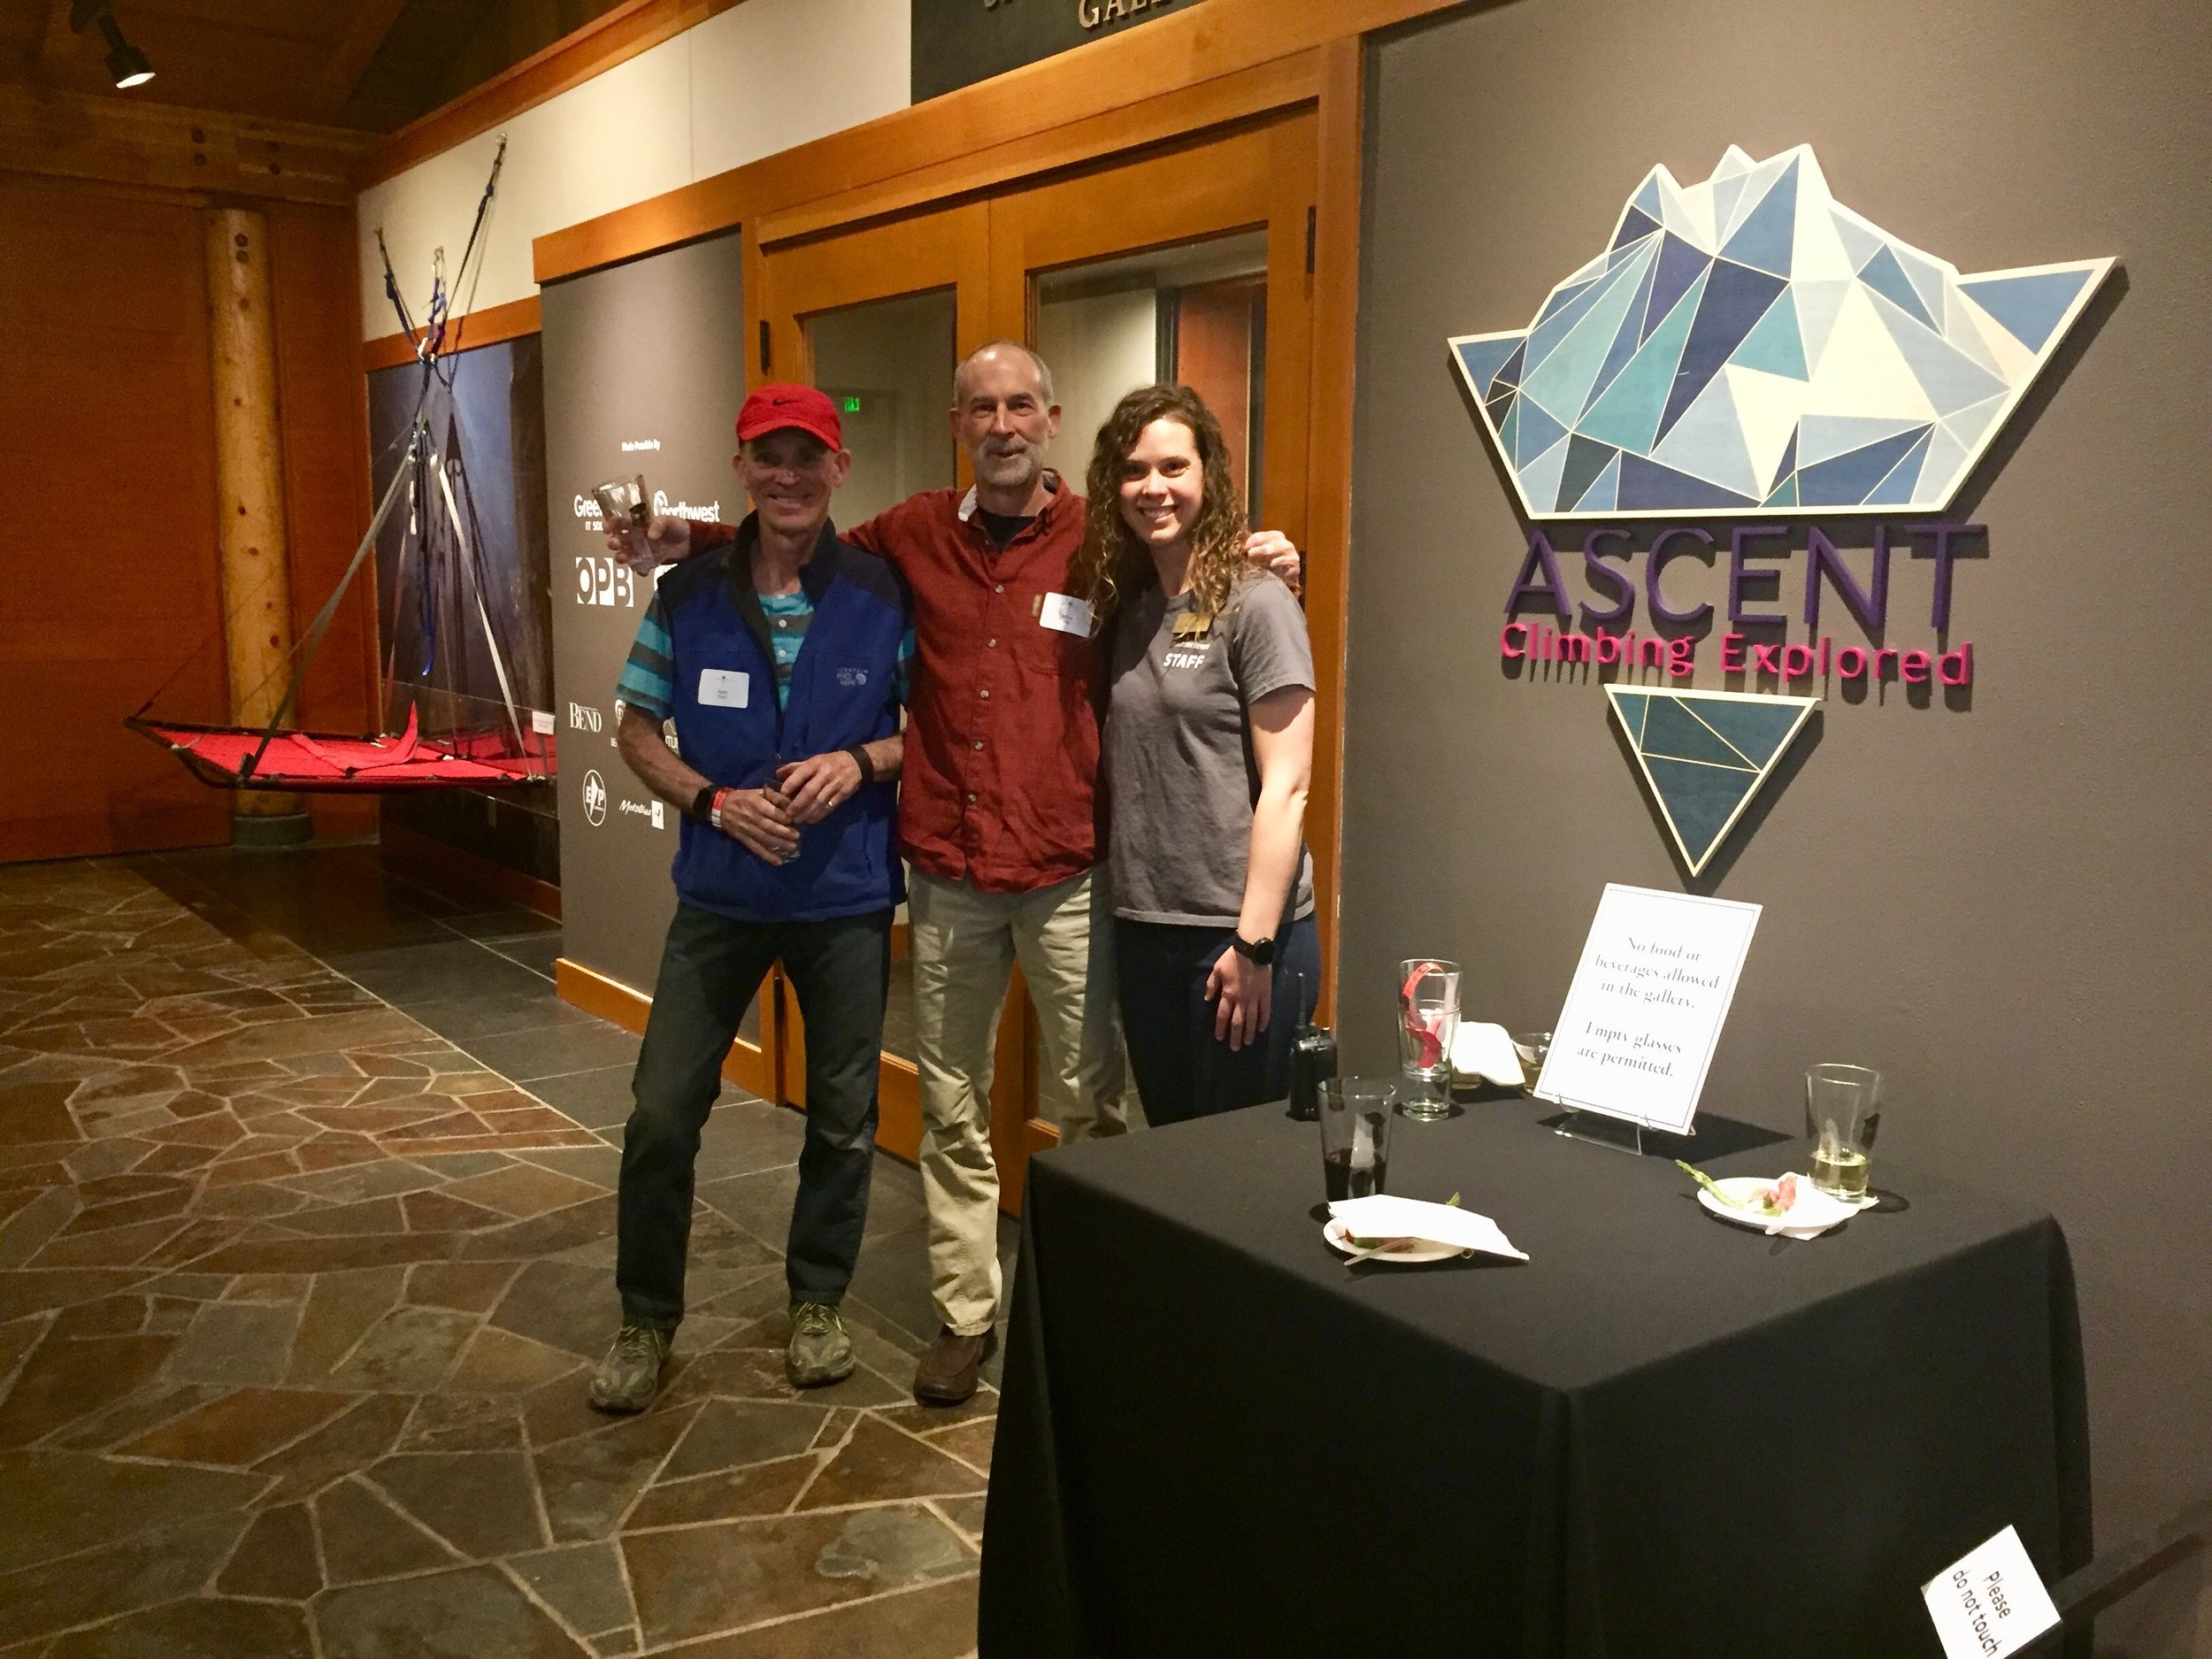 Alan Watts and Mike Volk with Curator Laura Ferguson at the entrance to the Ascent Climbing Exhibit